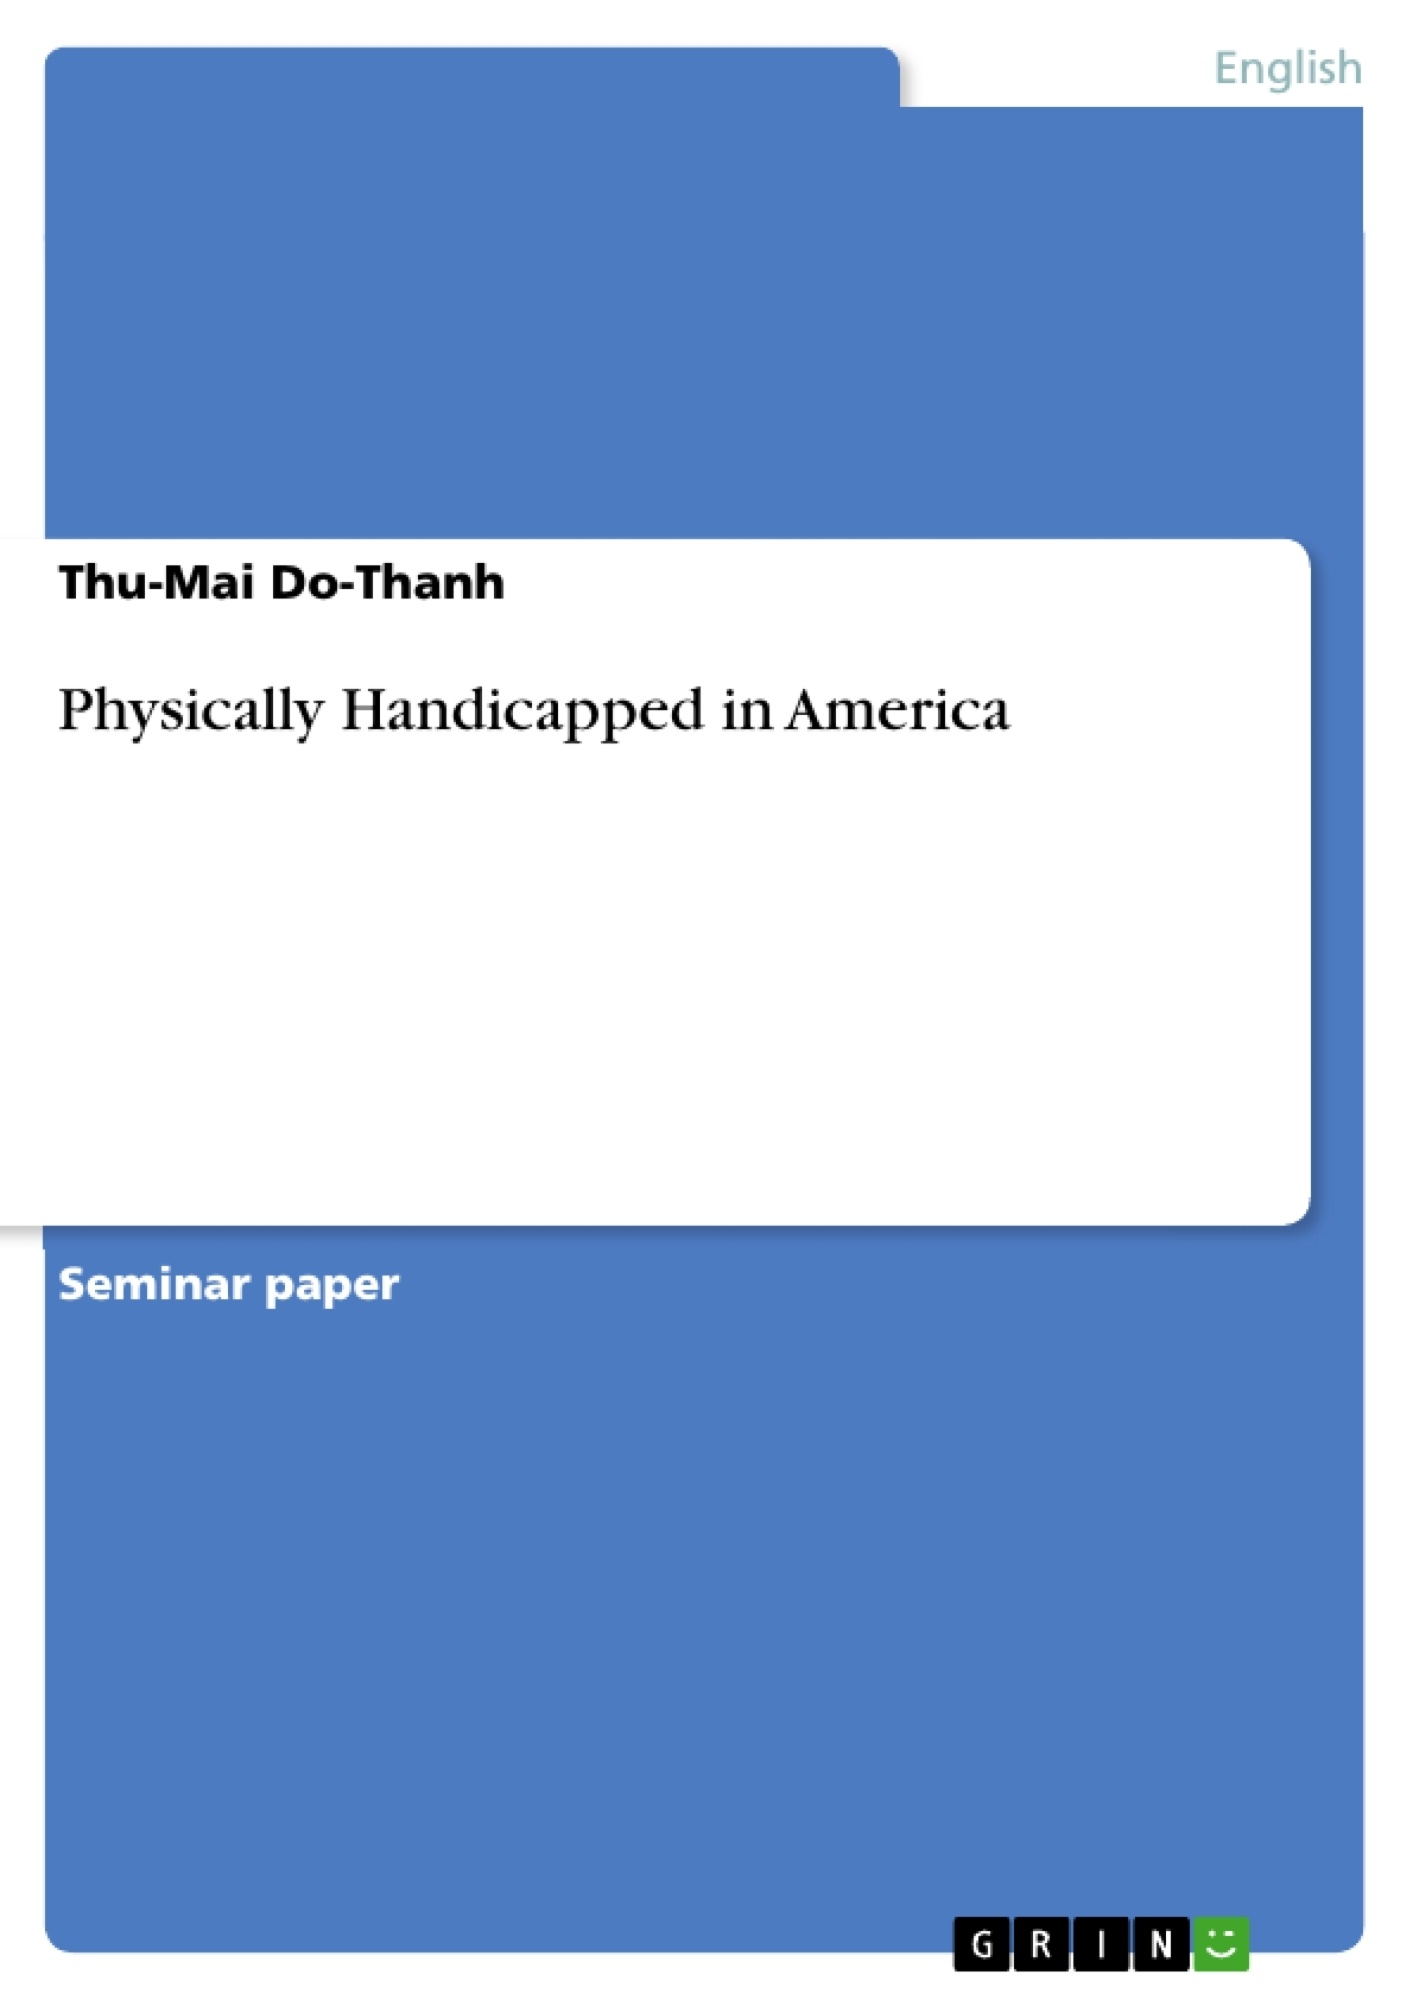 Title: Physically Handicapped in America